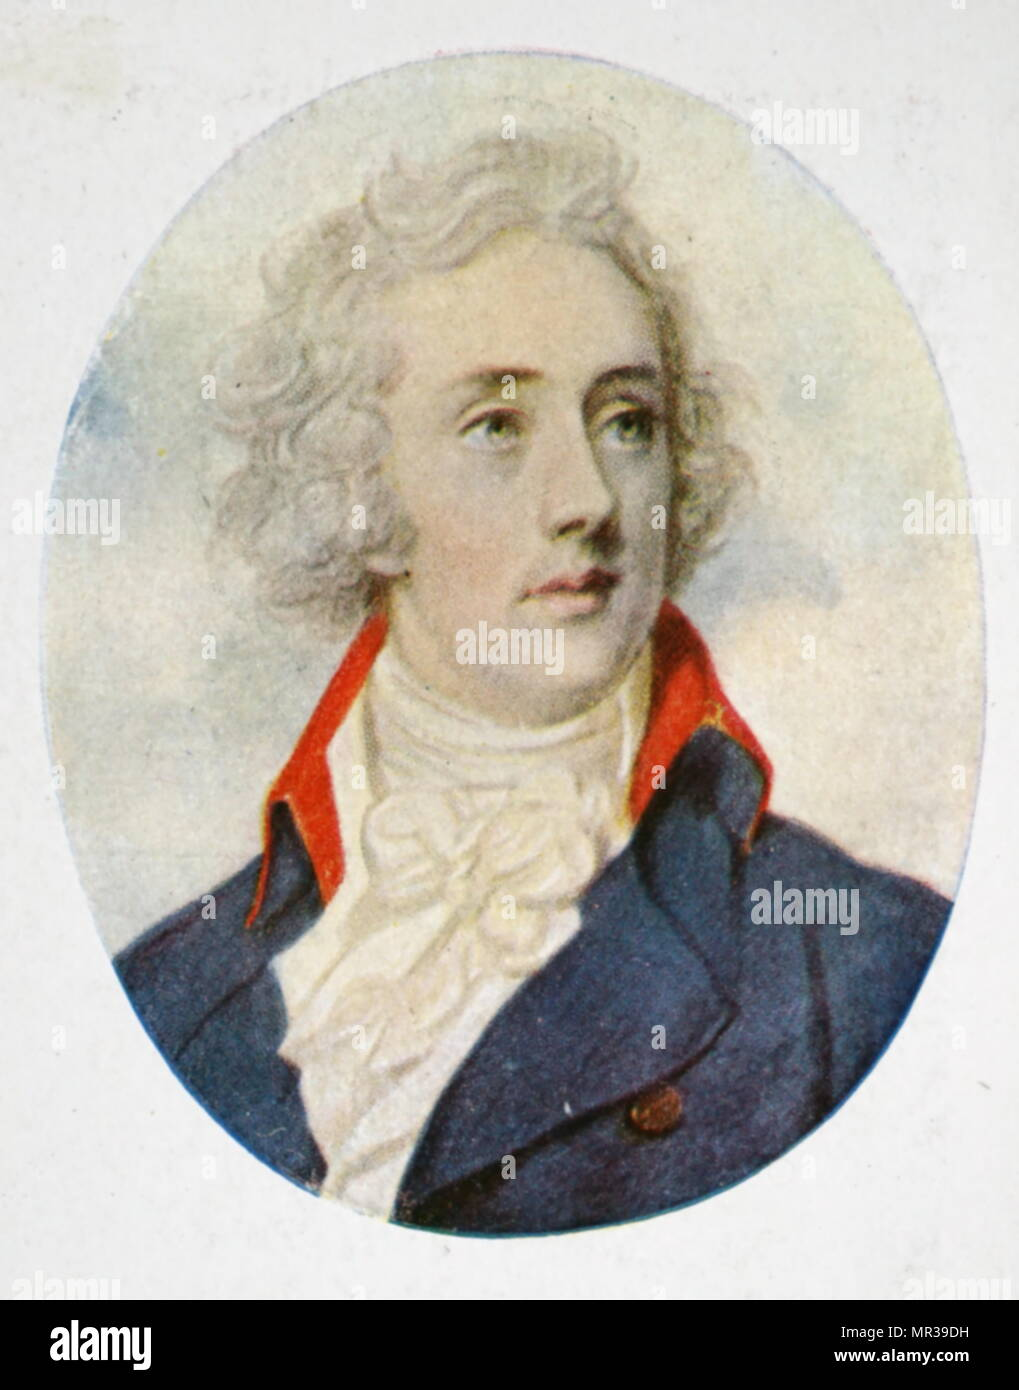 Portrait of William Pitt the Younger (1759-1806) a prominent British Tory statesman and the youngest Prime Minister at the age of 24. Dated 18th century - Stock Image